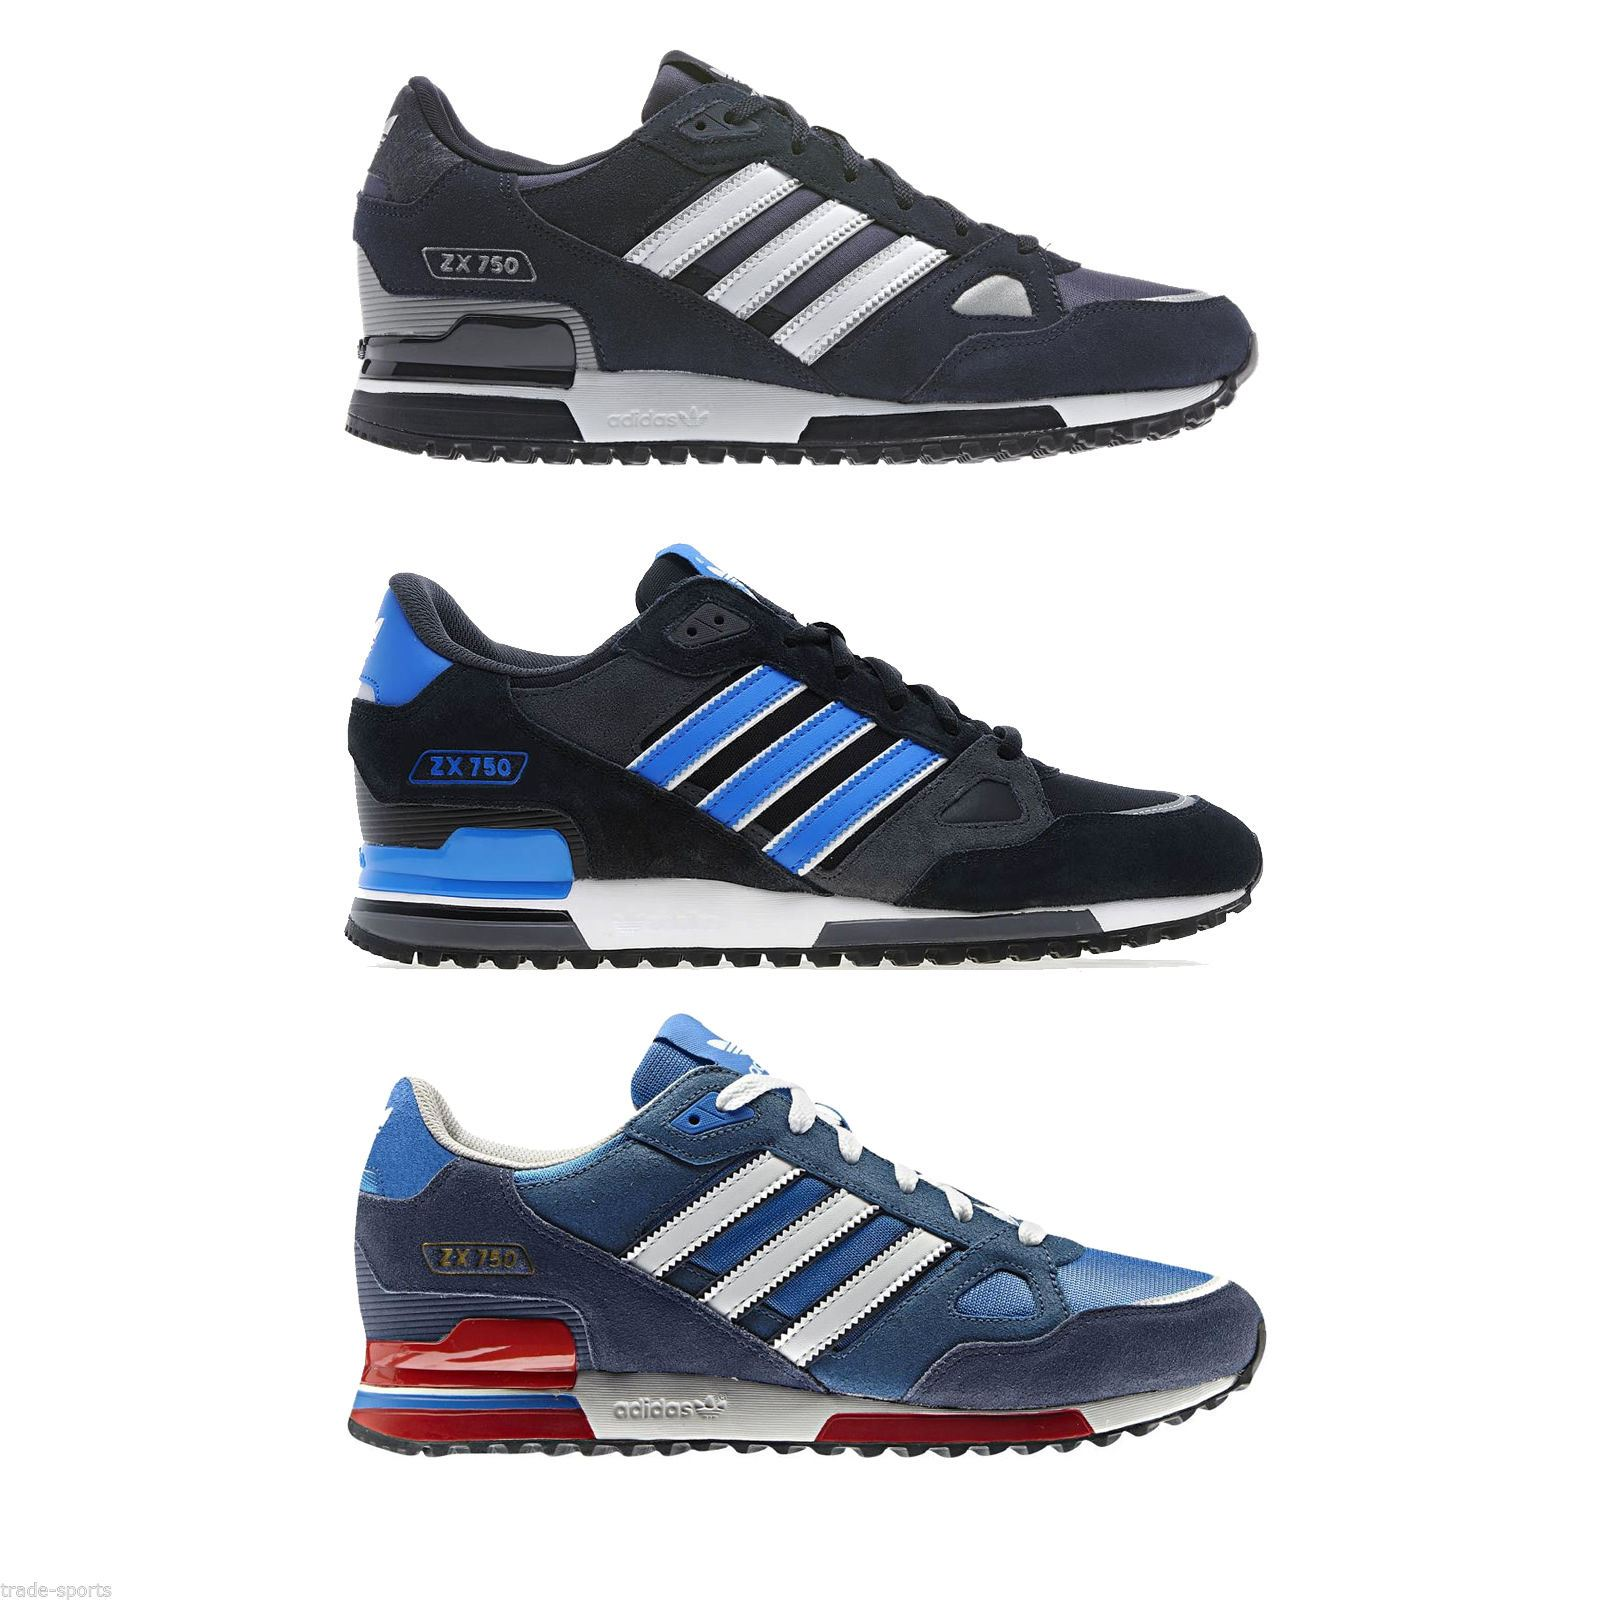 buy online 8432d 0e272 Details about ADIDAS ORIGINALS ZX 750 MENS RUNNING TRAINERS BLUE BLACK NAVY  SNEAKERS SHOES NEW